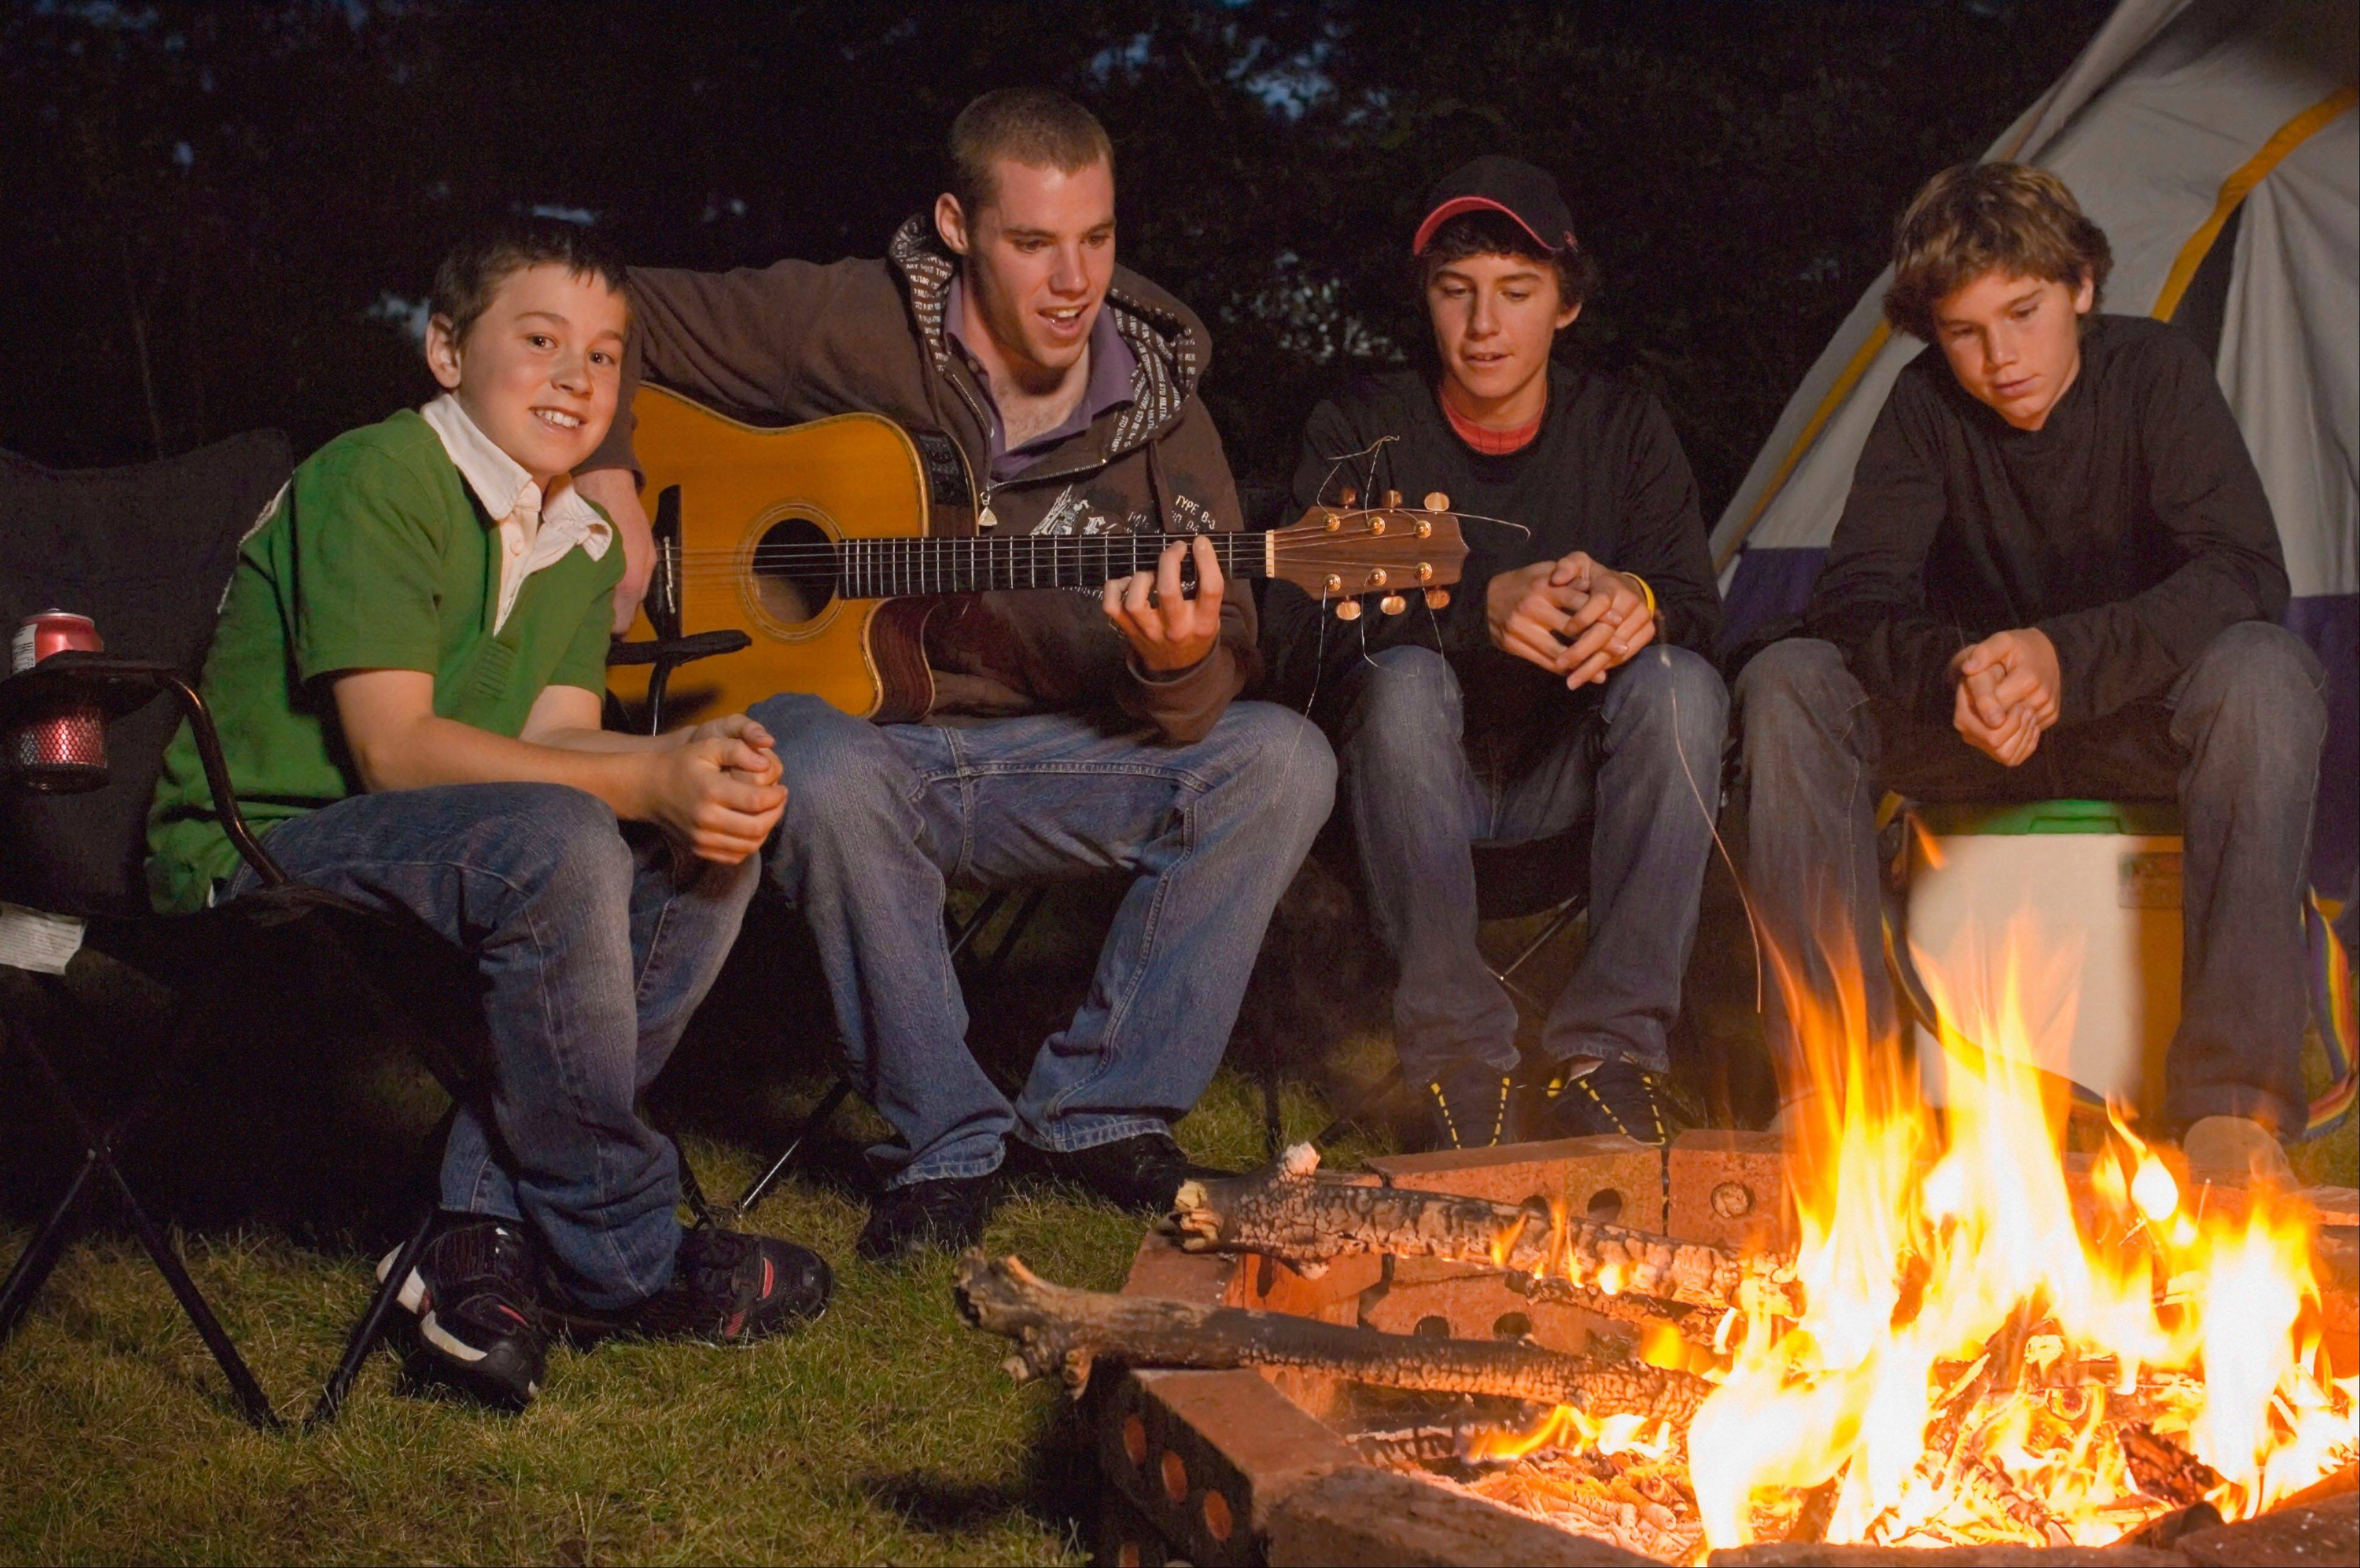 Four teenage boys sitting by campfire